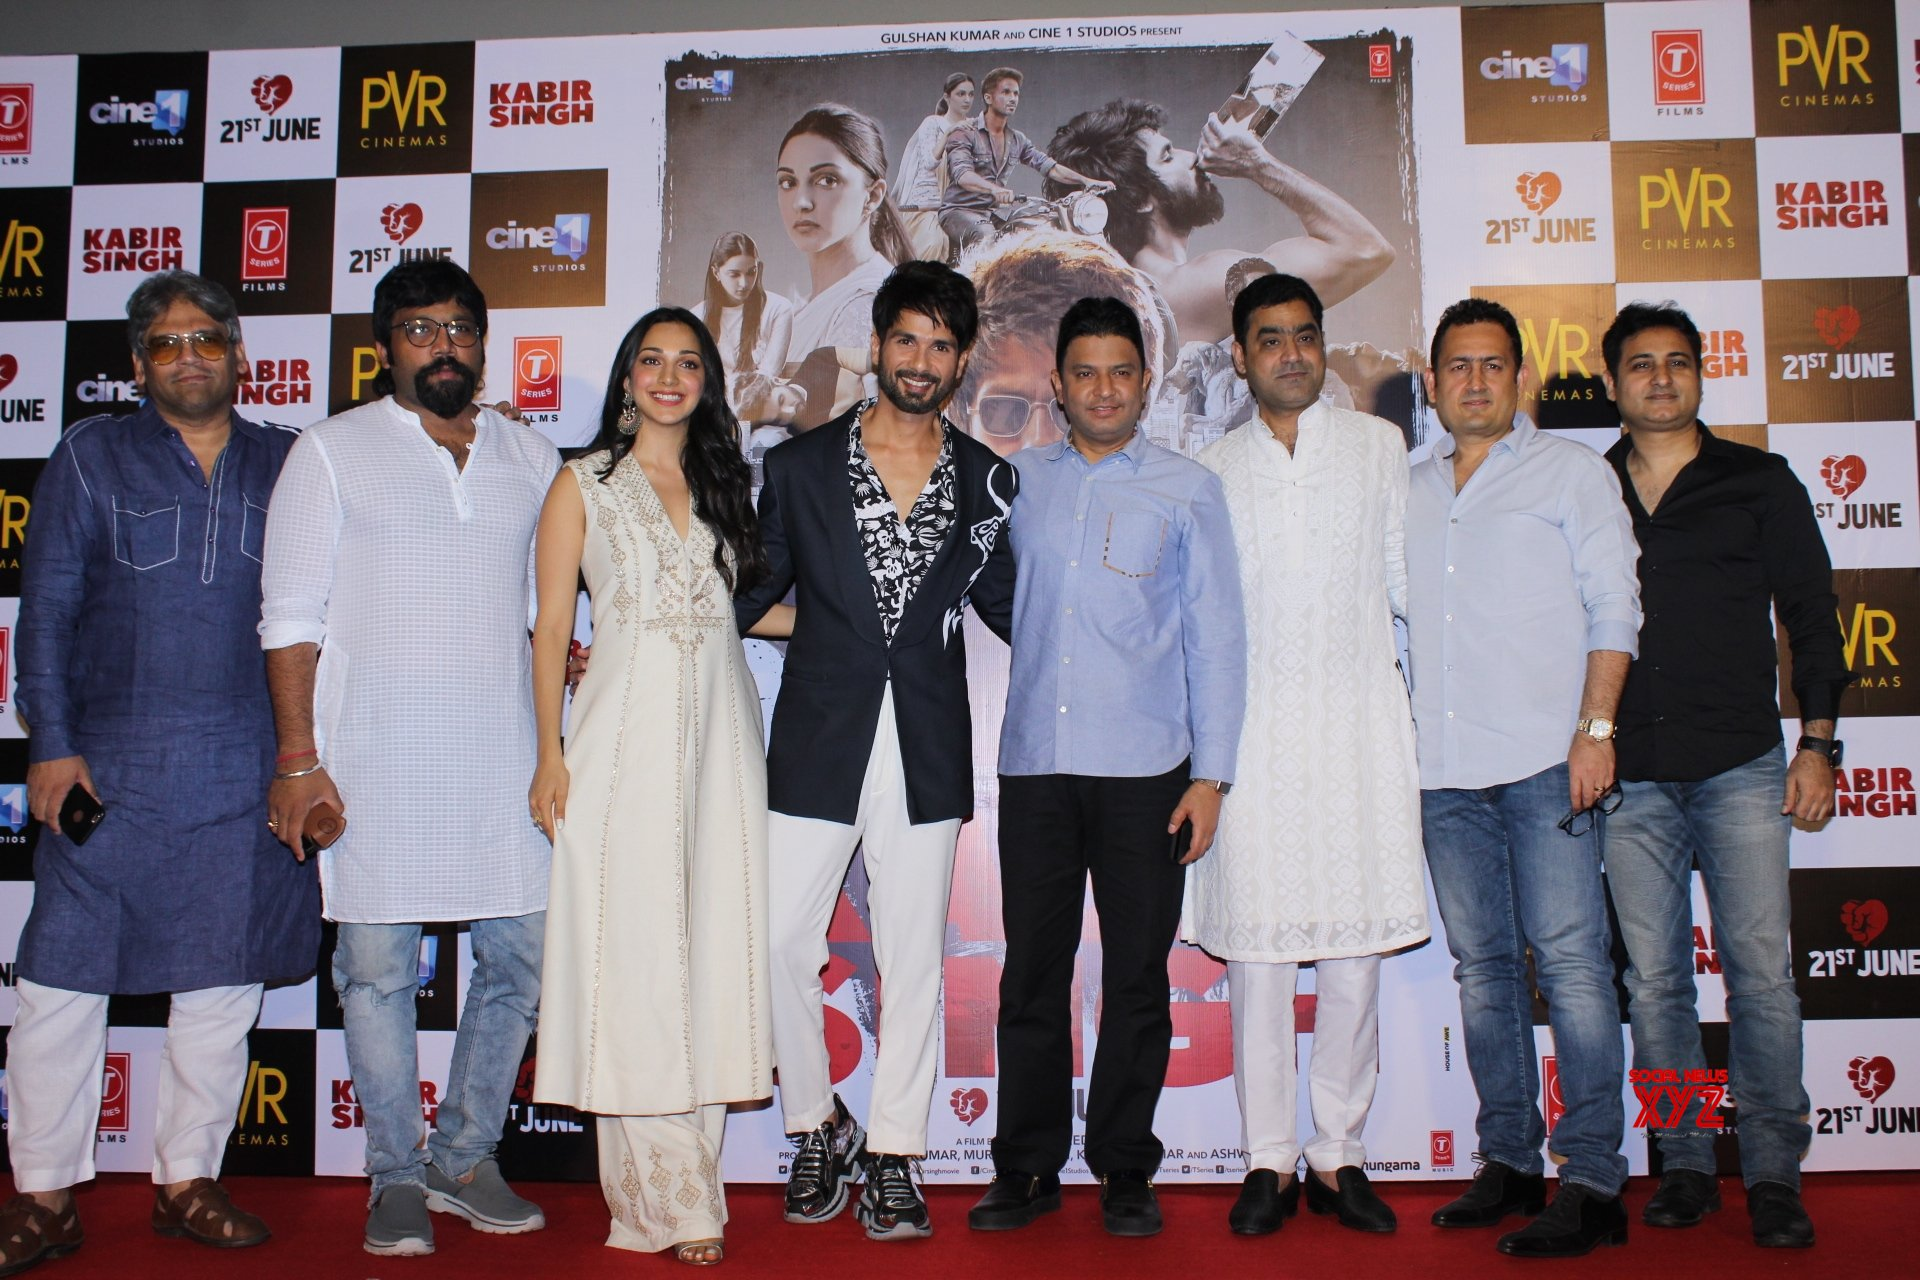 'Kabir Singh' getting a live concert in Pune